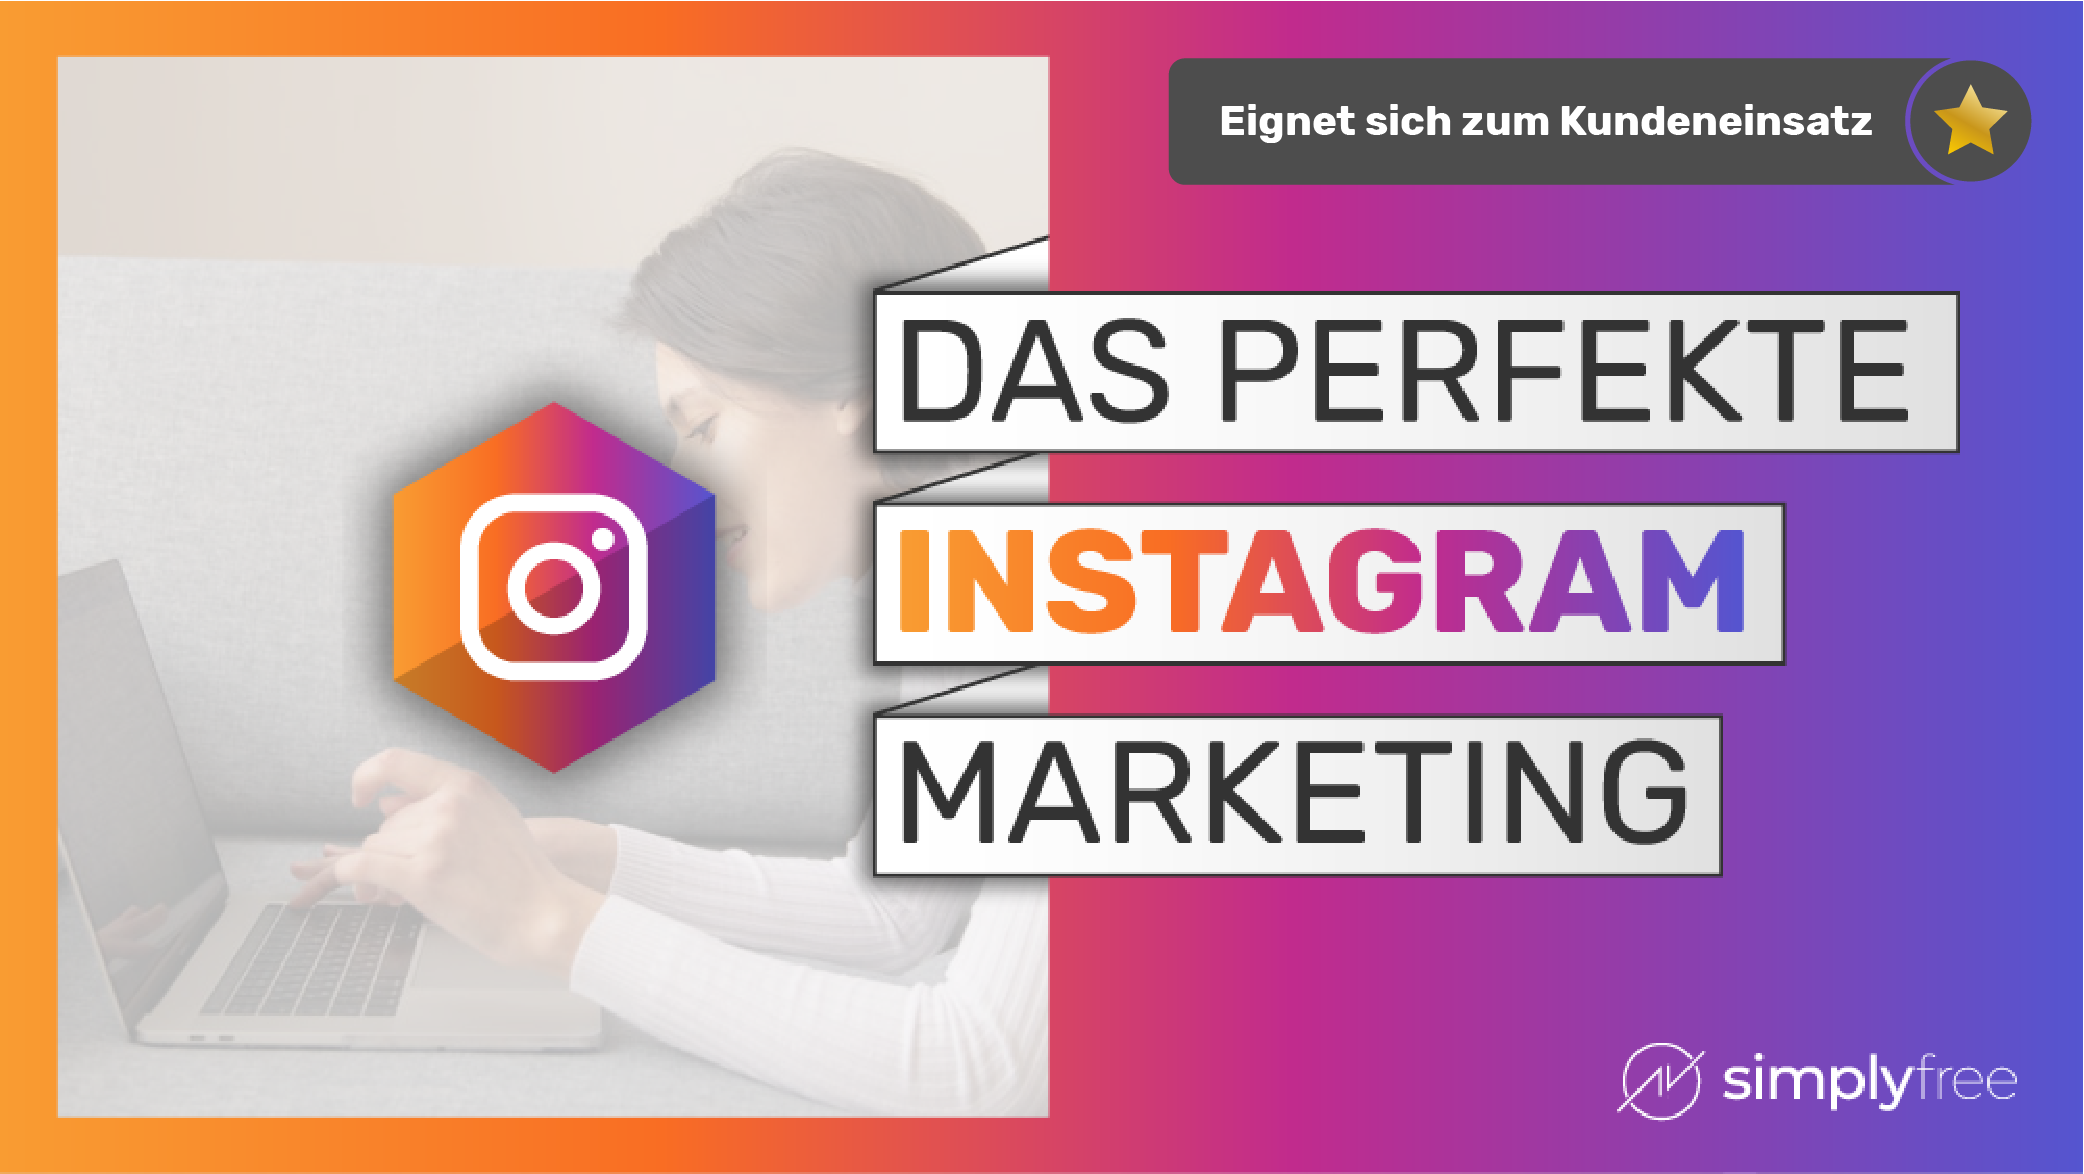 Instagram Follower gewinnen Kurs